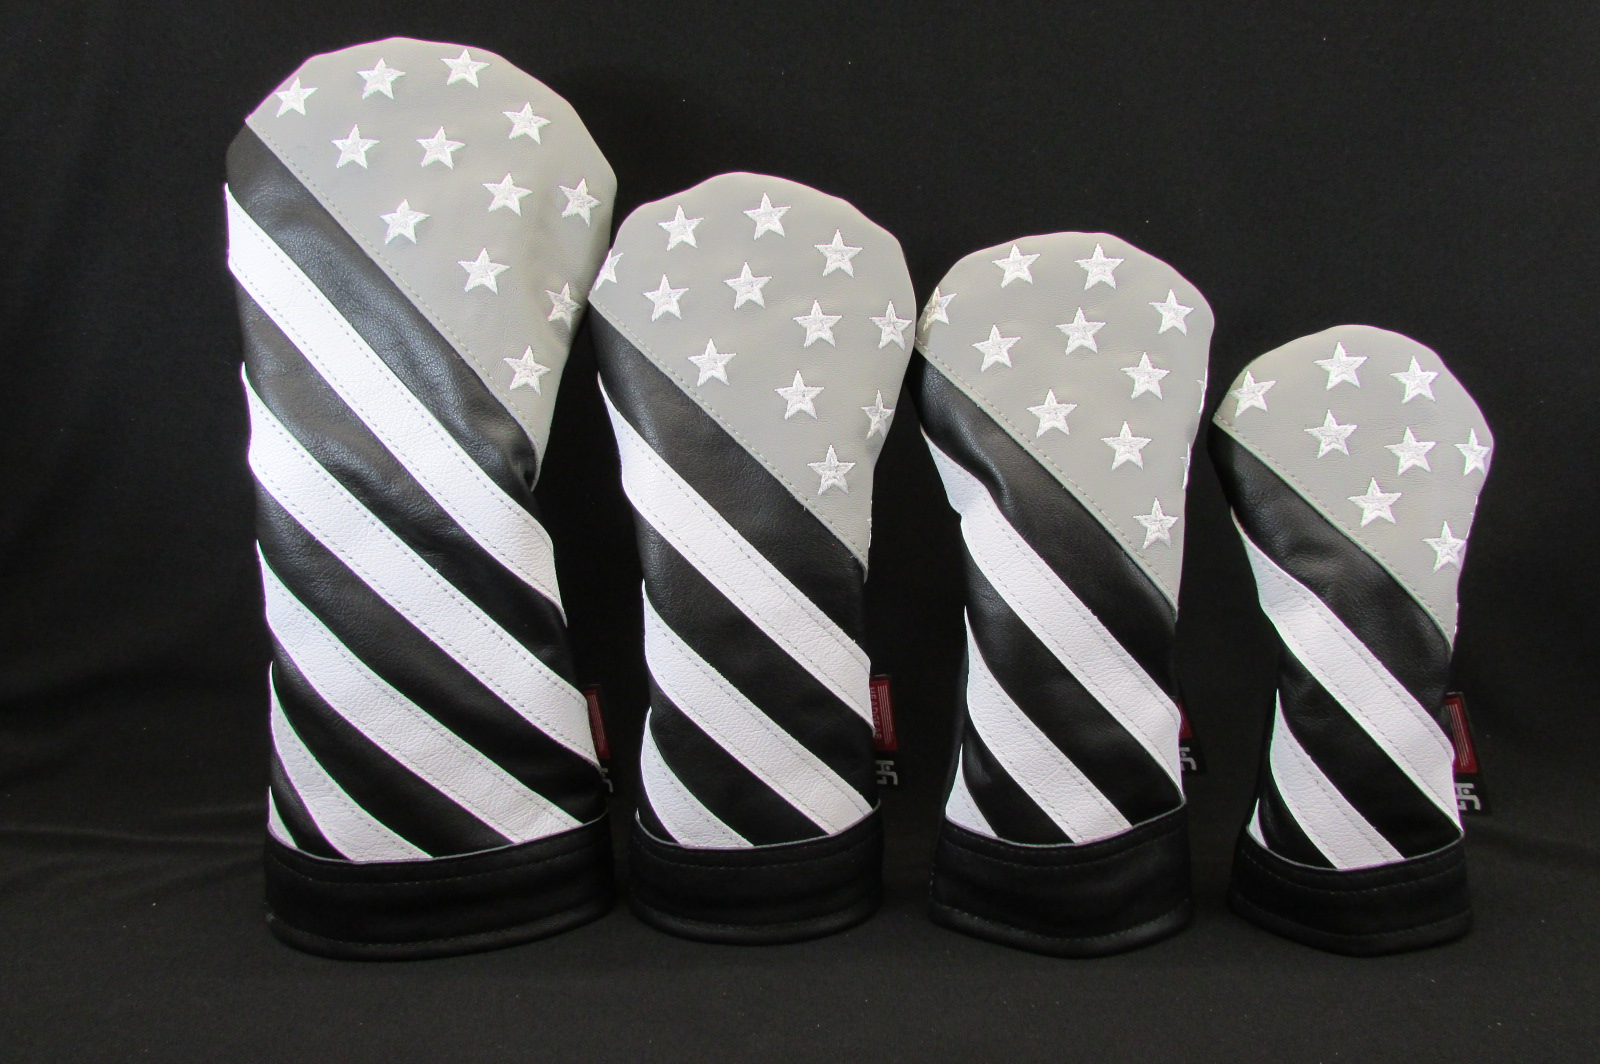 d46af3bdb47 Handmade Stars and Stripes Monochromatic Leather Headcover Set ...